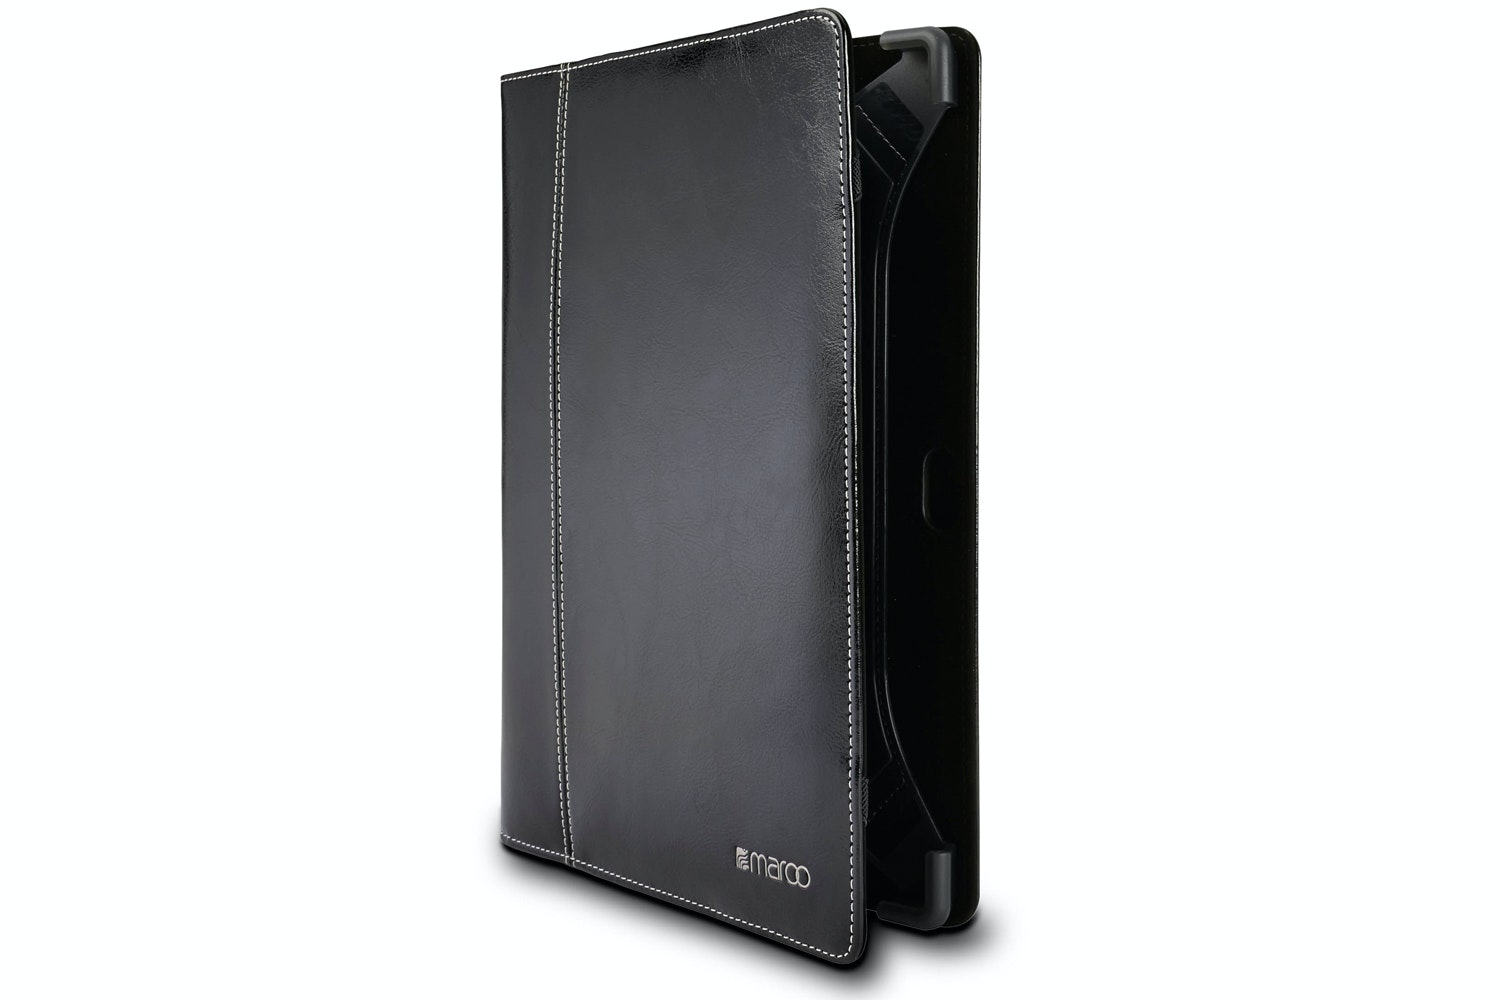 Maroo Leather Folio Surface 3 Case | Black